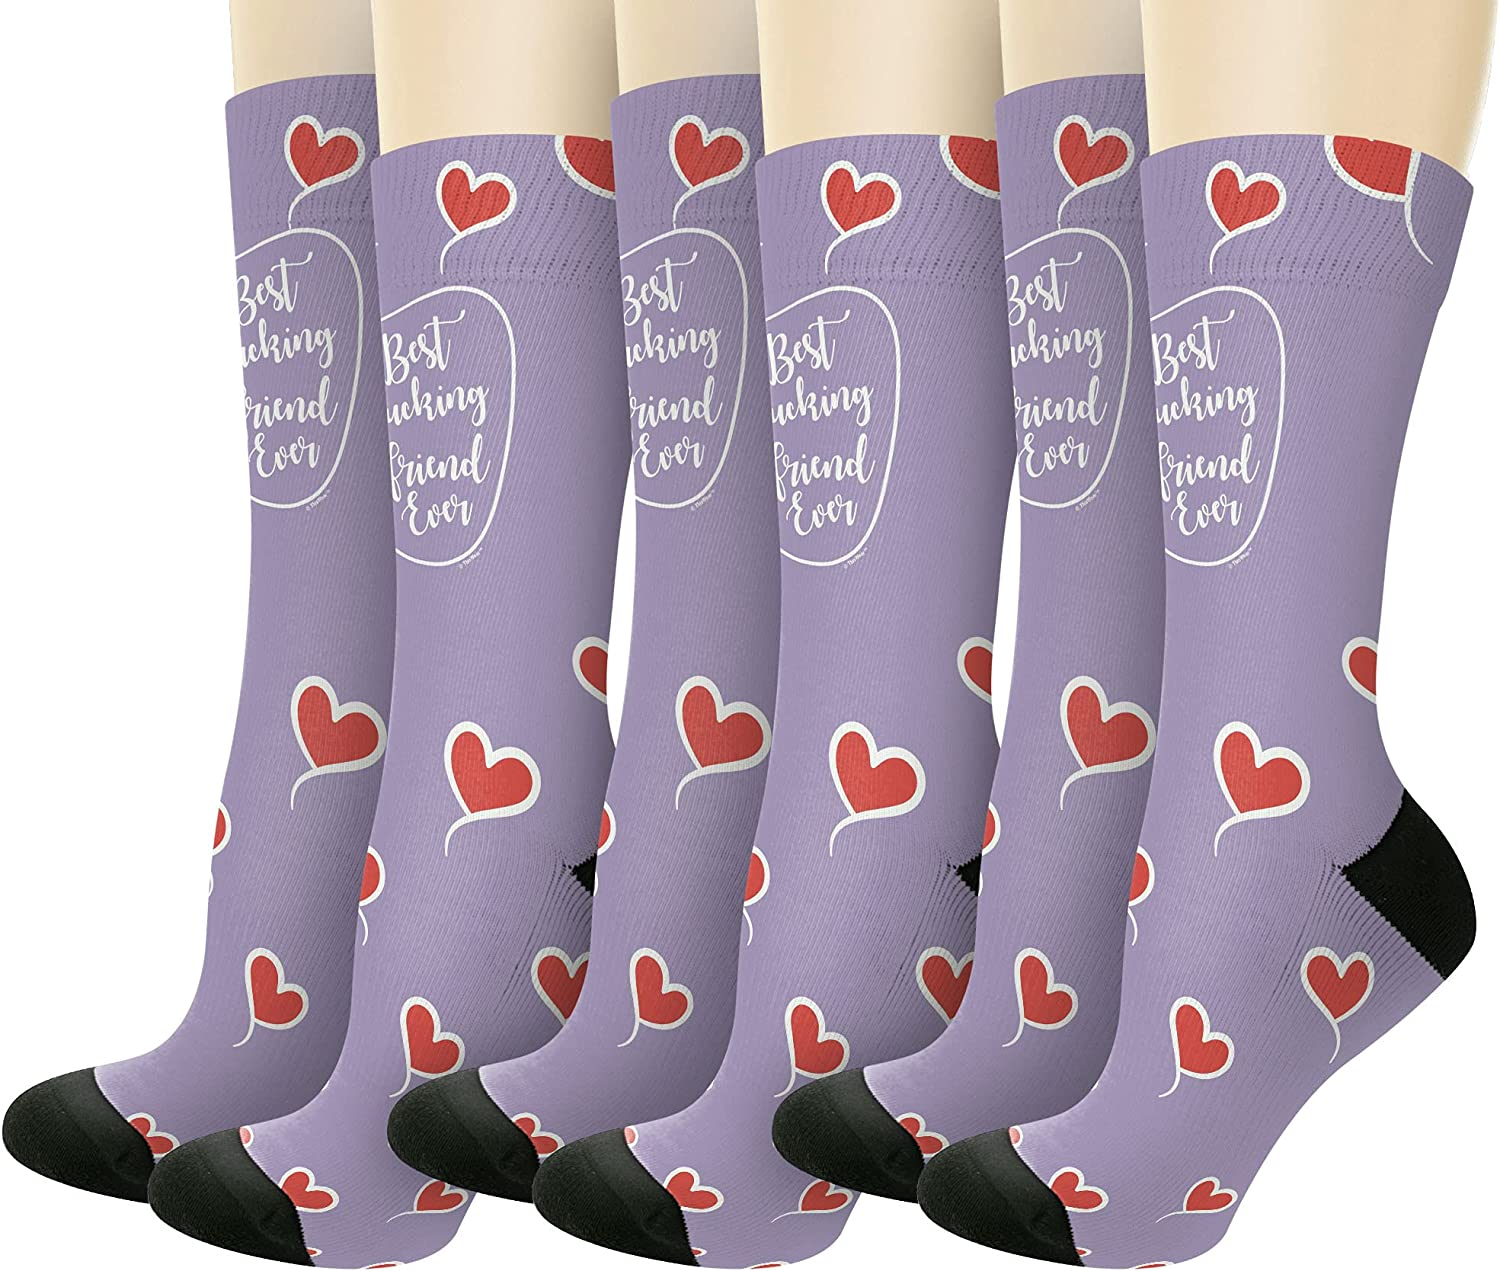 Best F-cking Friend Ever Socks New Max 43% OFF color Crew Novelty